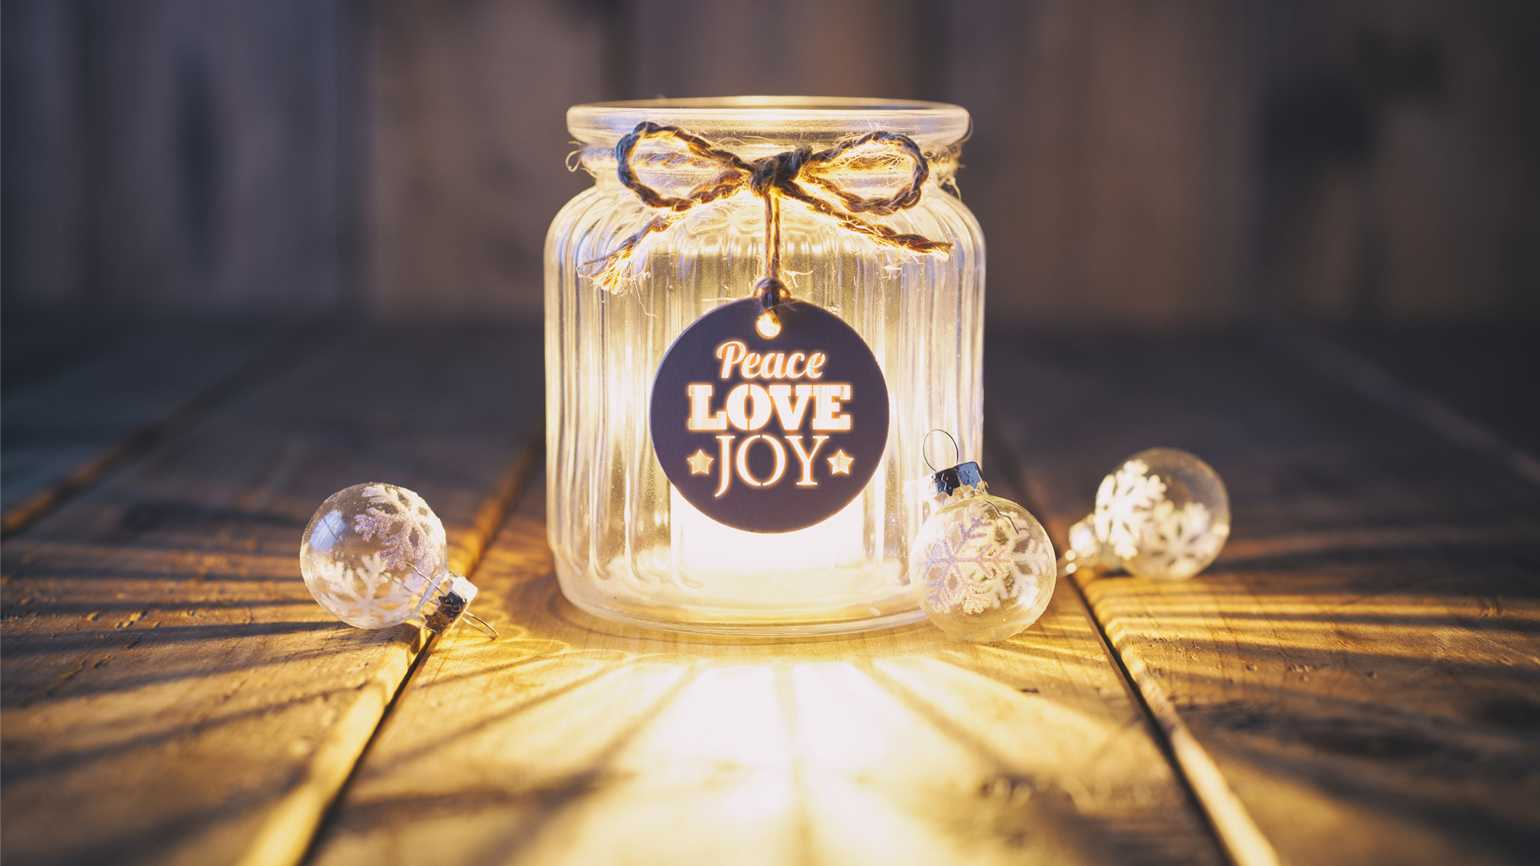 A jar that reads 'Peace Love Joy' with a lighted candle as well as snowflake ornaments.